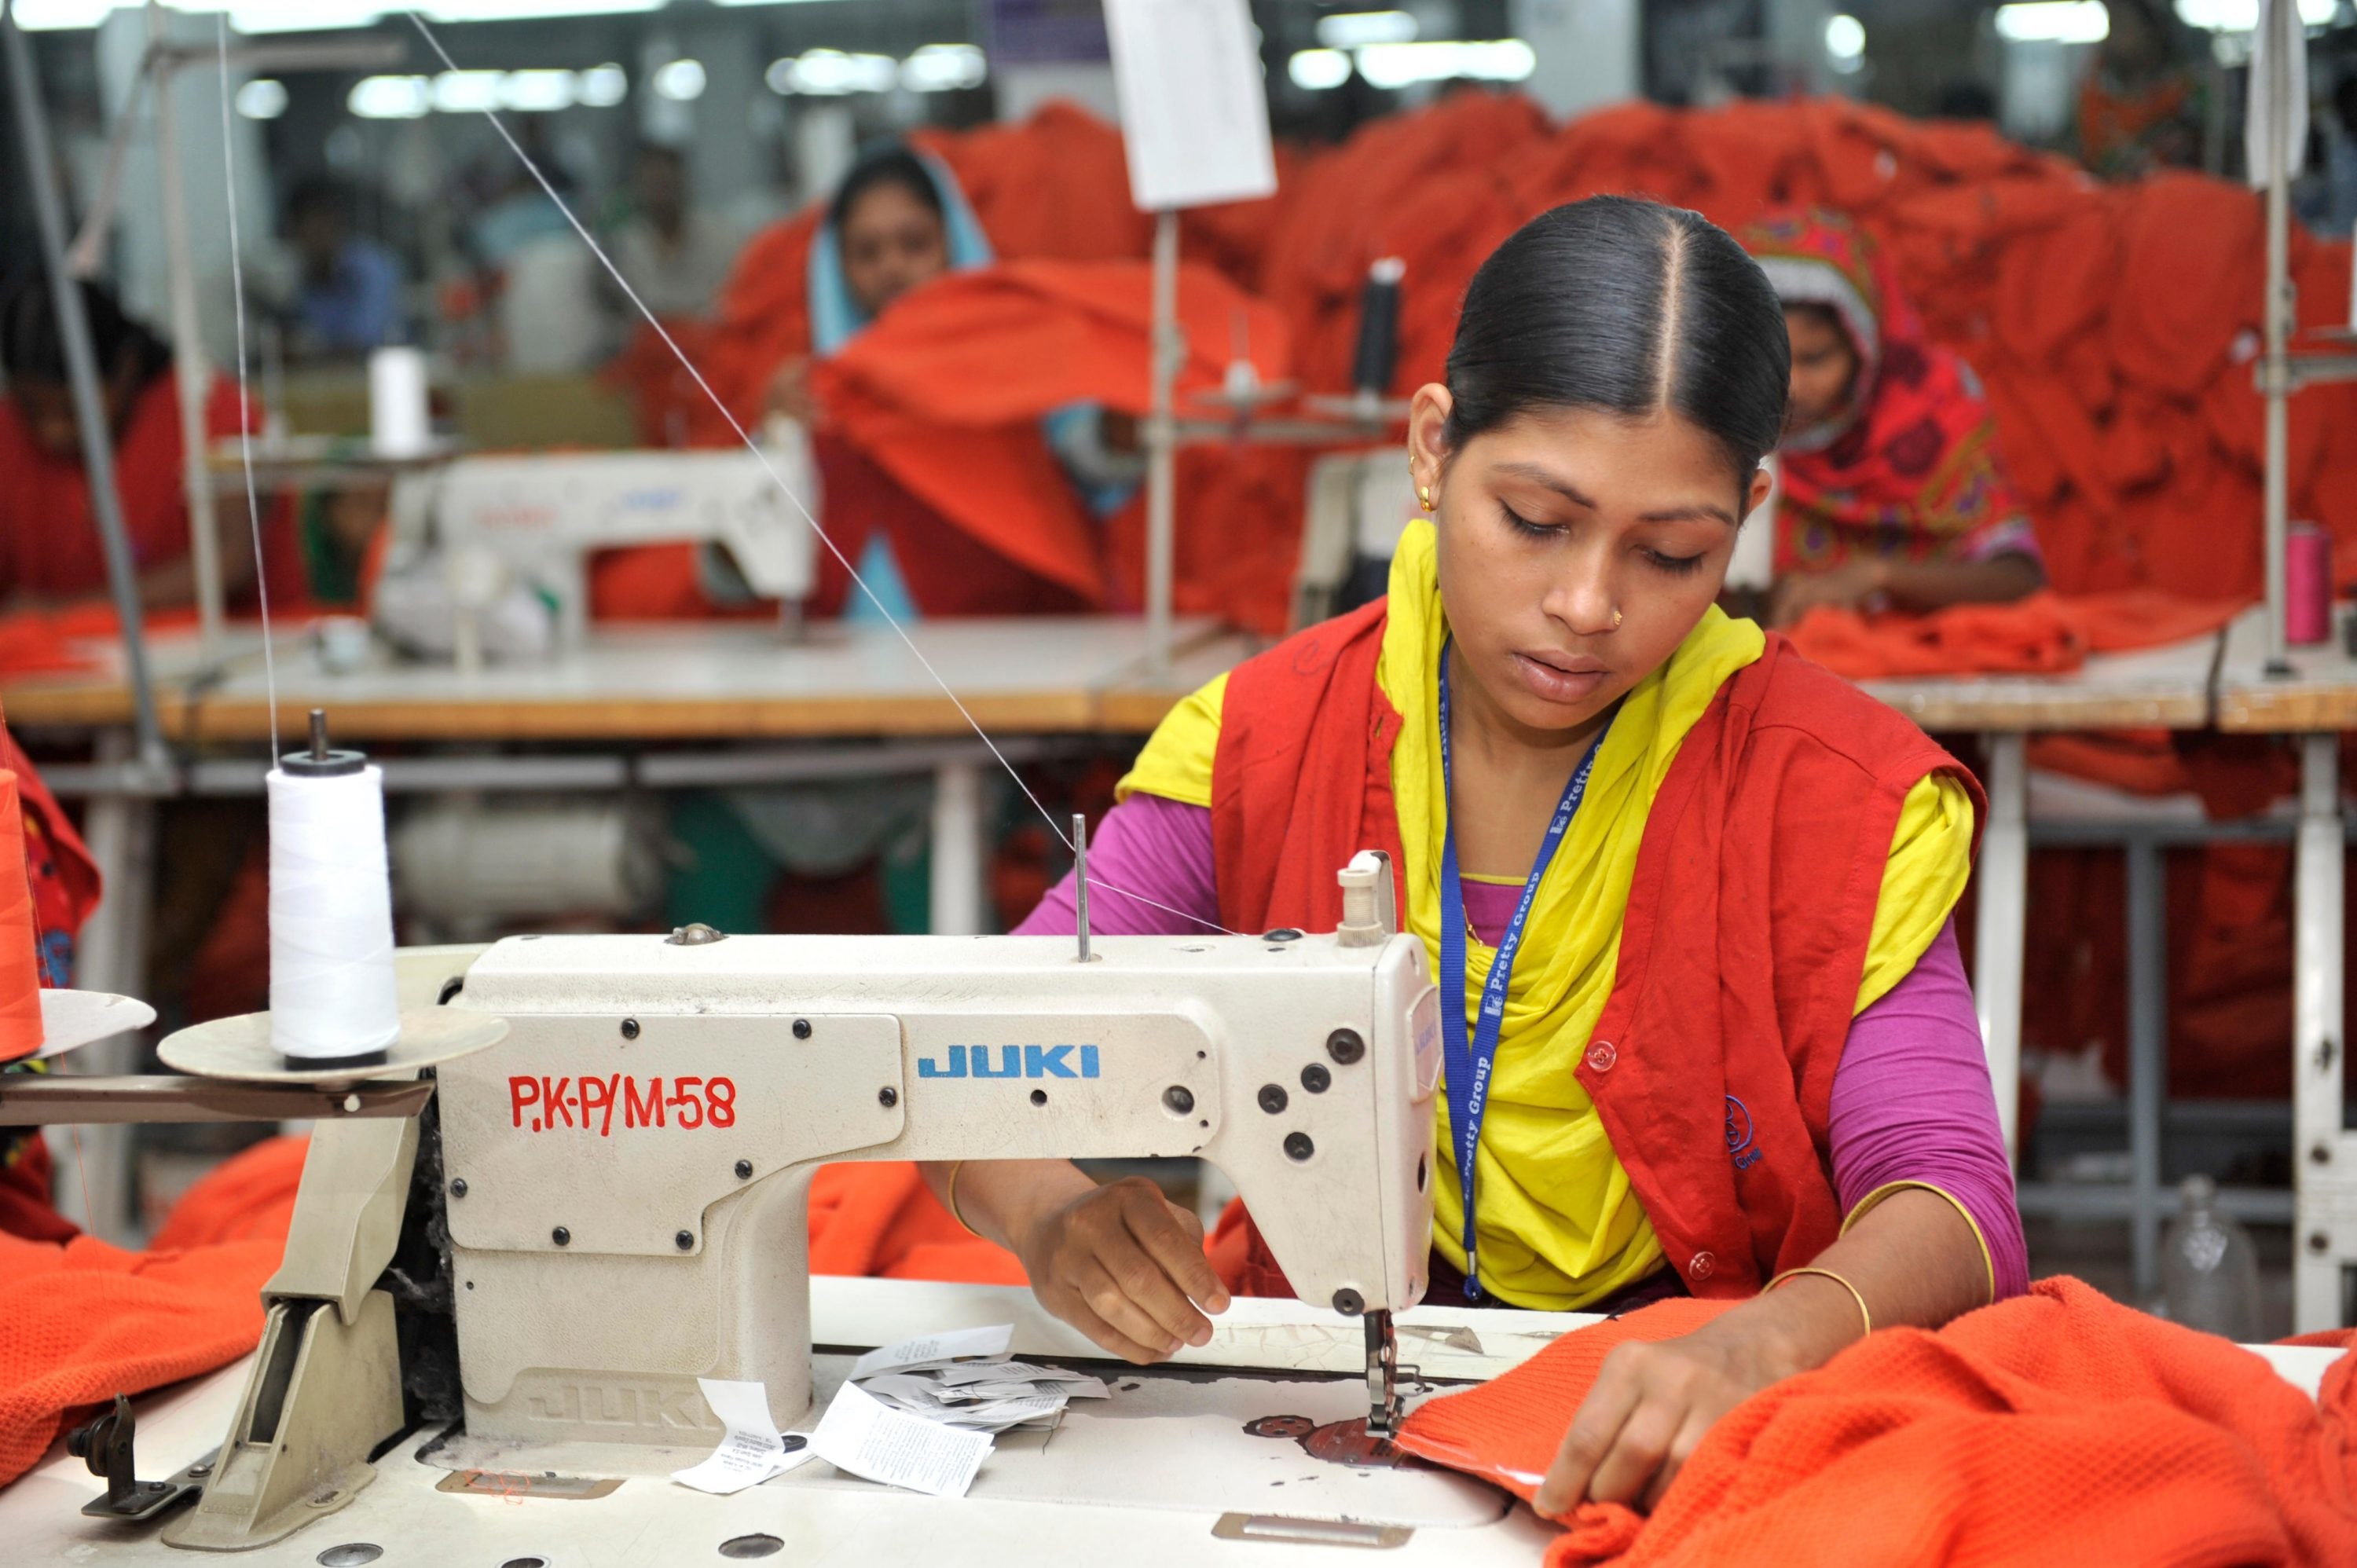 Gajipur, Bangladesh - November 2, 2013: Bangladesh clothing and garment factories are often filled with hundreds of female laborers who work long shifts for, often, low wages. When Bangladeshi women are separated from their husbands or are being divorced,